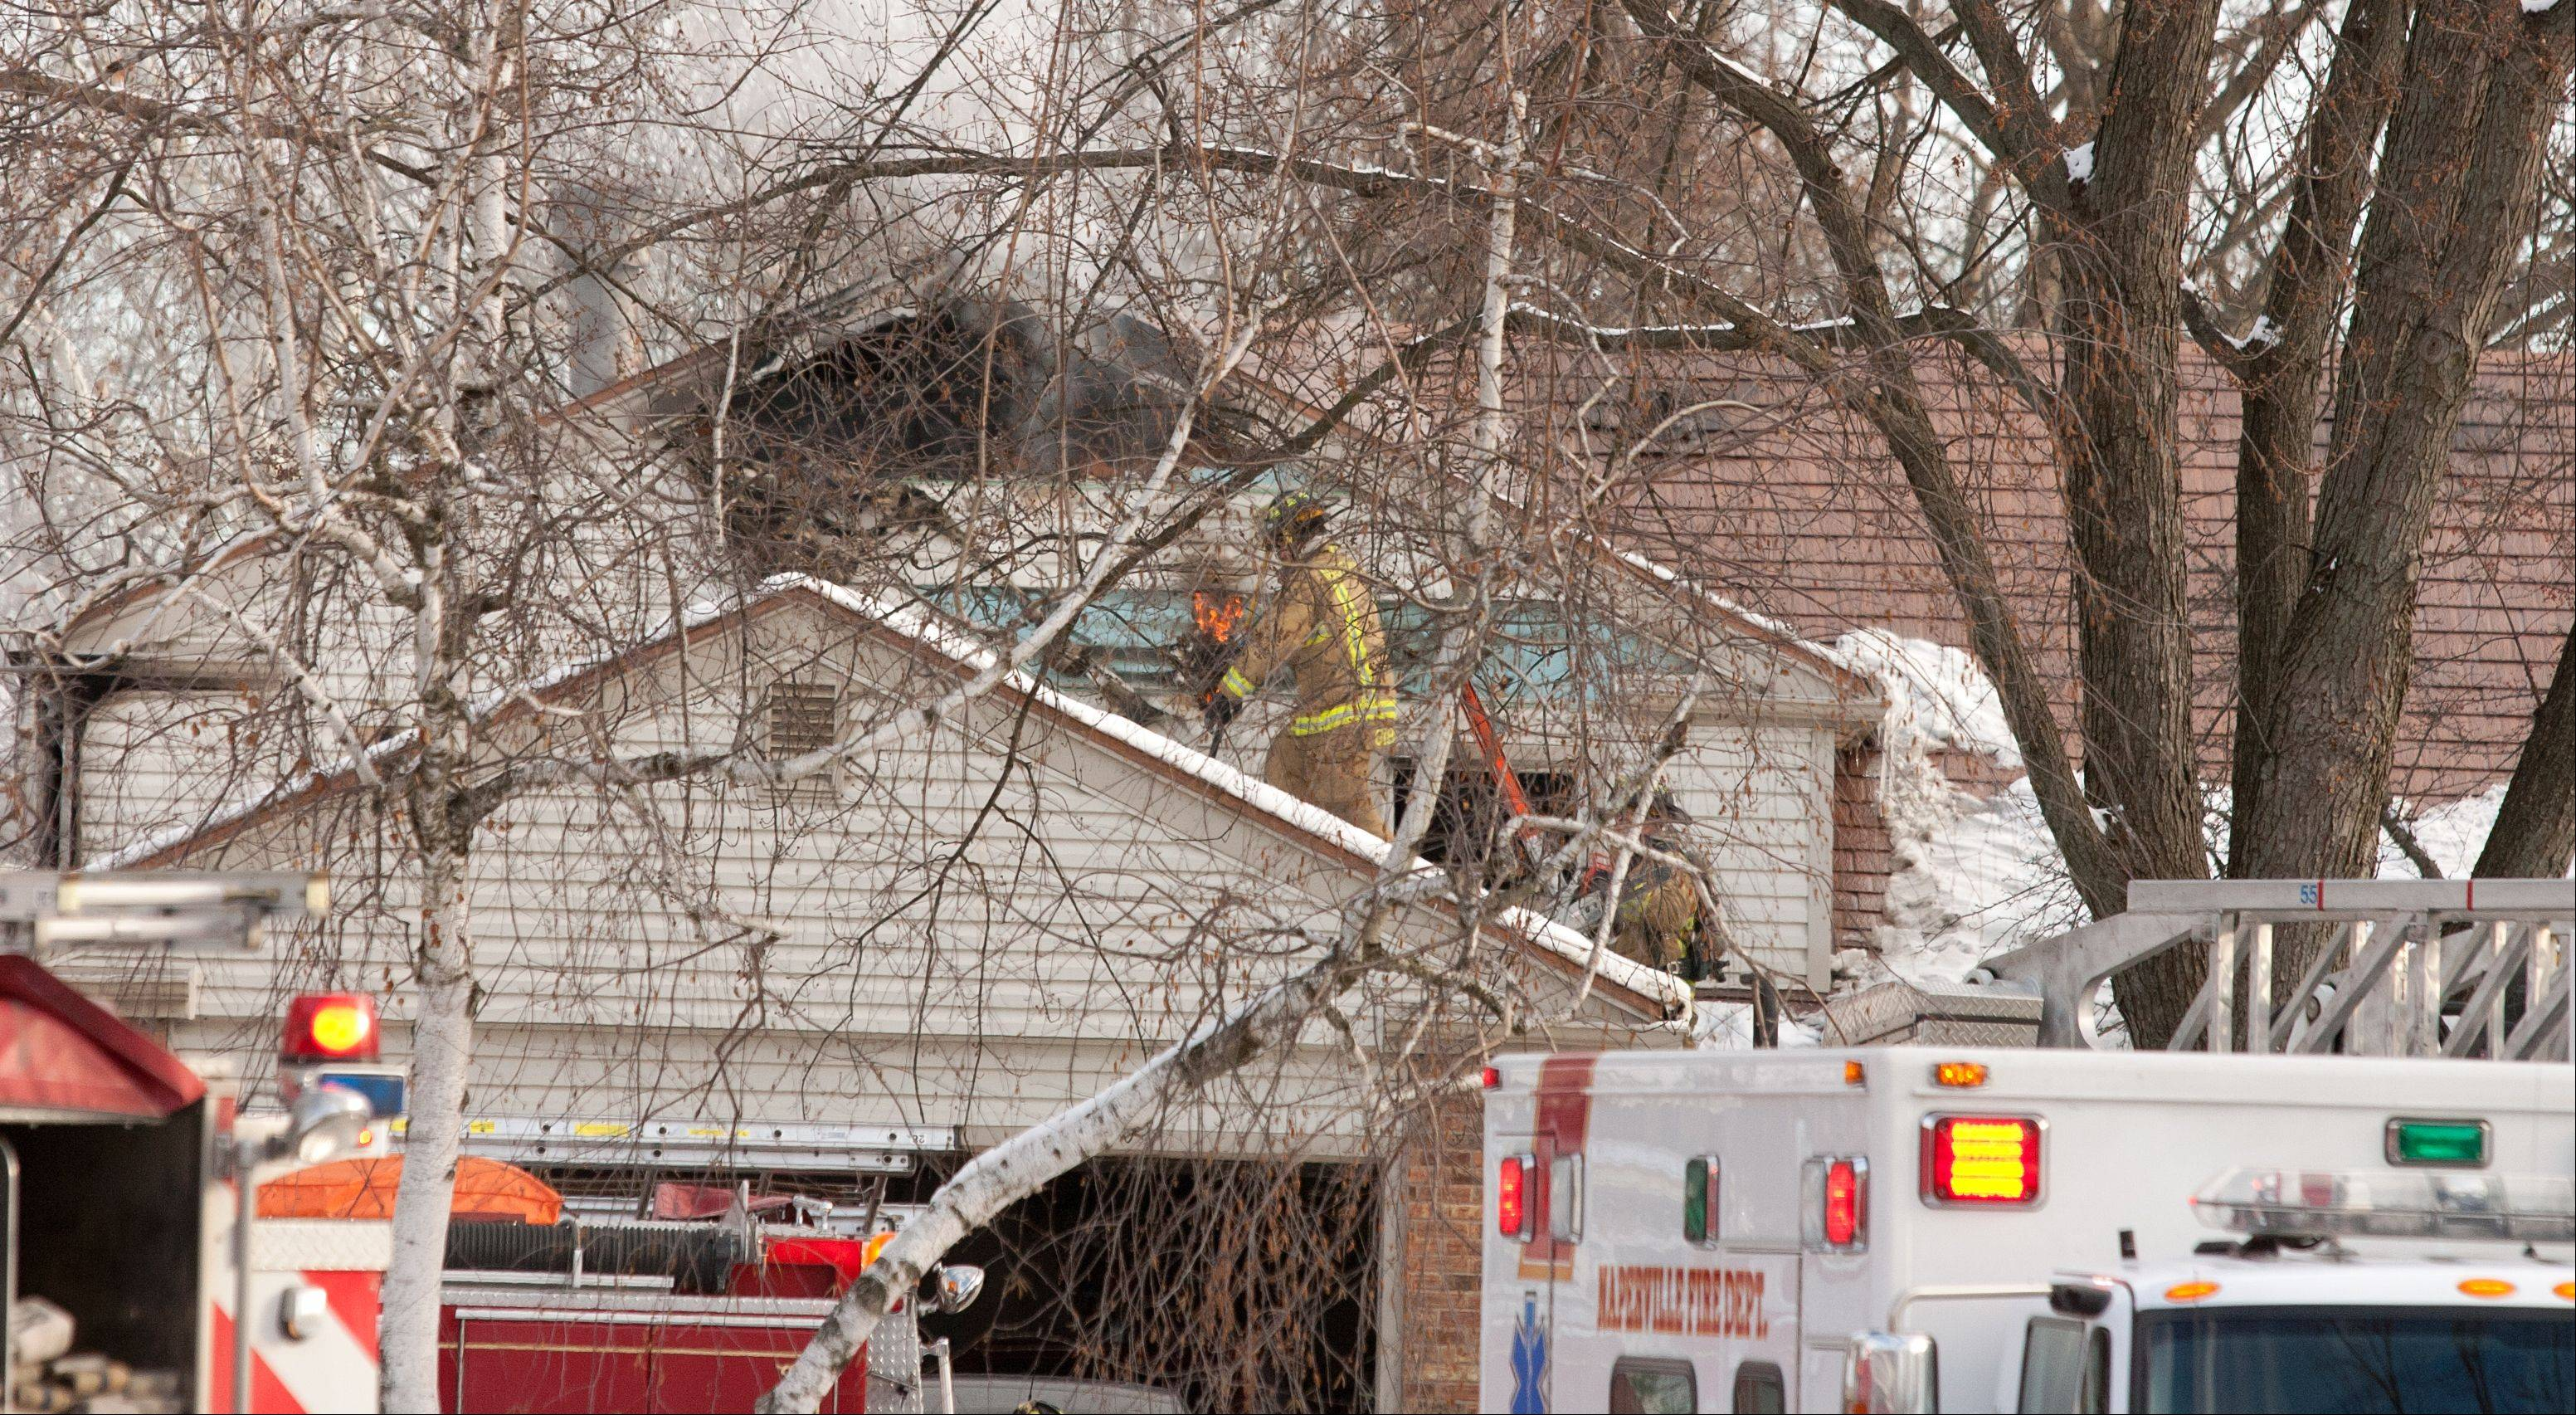 Tom and Jan Lambert died in a fire Wednesday morning inside their two-story house on Field Court in Naperville. The Naperville Fire Department has determined the fire was not suspicious, but investigators are still looking into the cause.